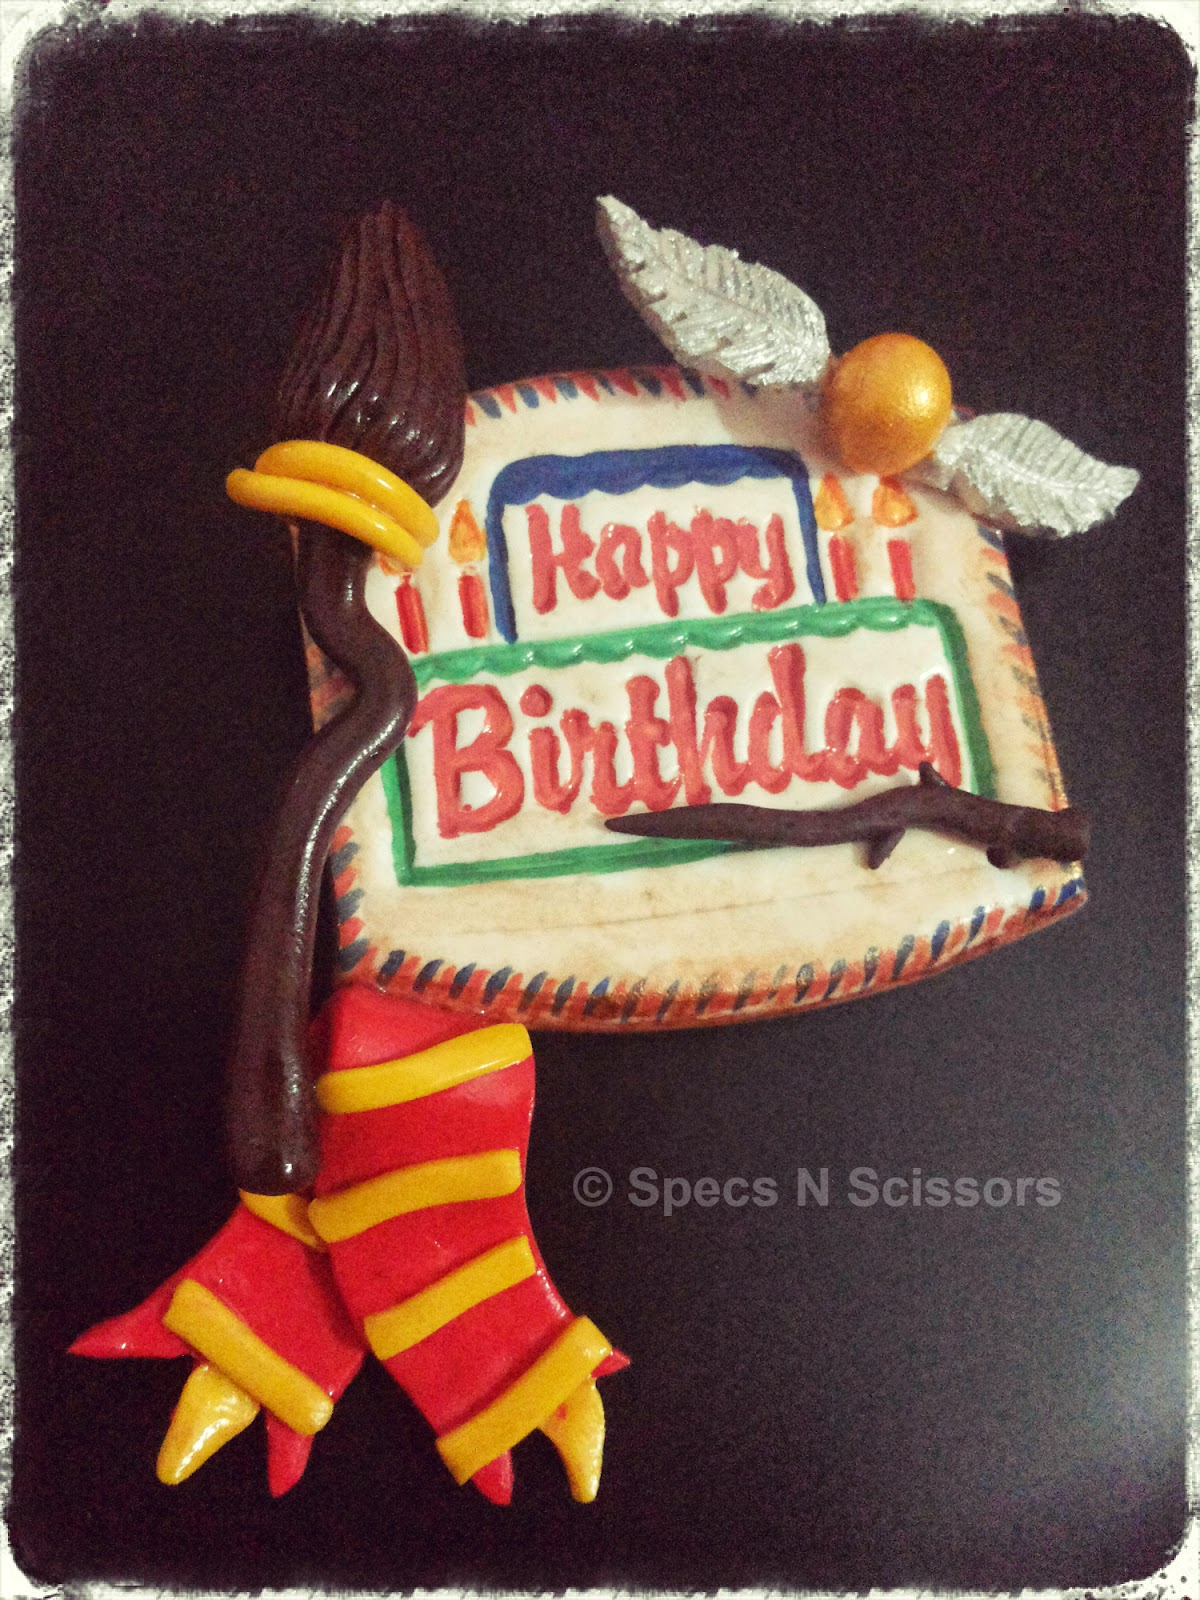 Specs N Scissors - Customized Gifts - Happy Birthday Magnet